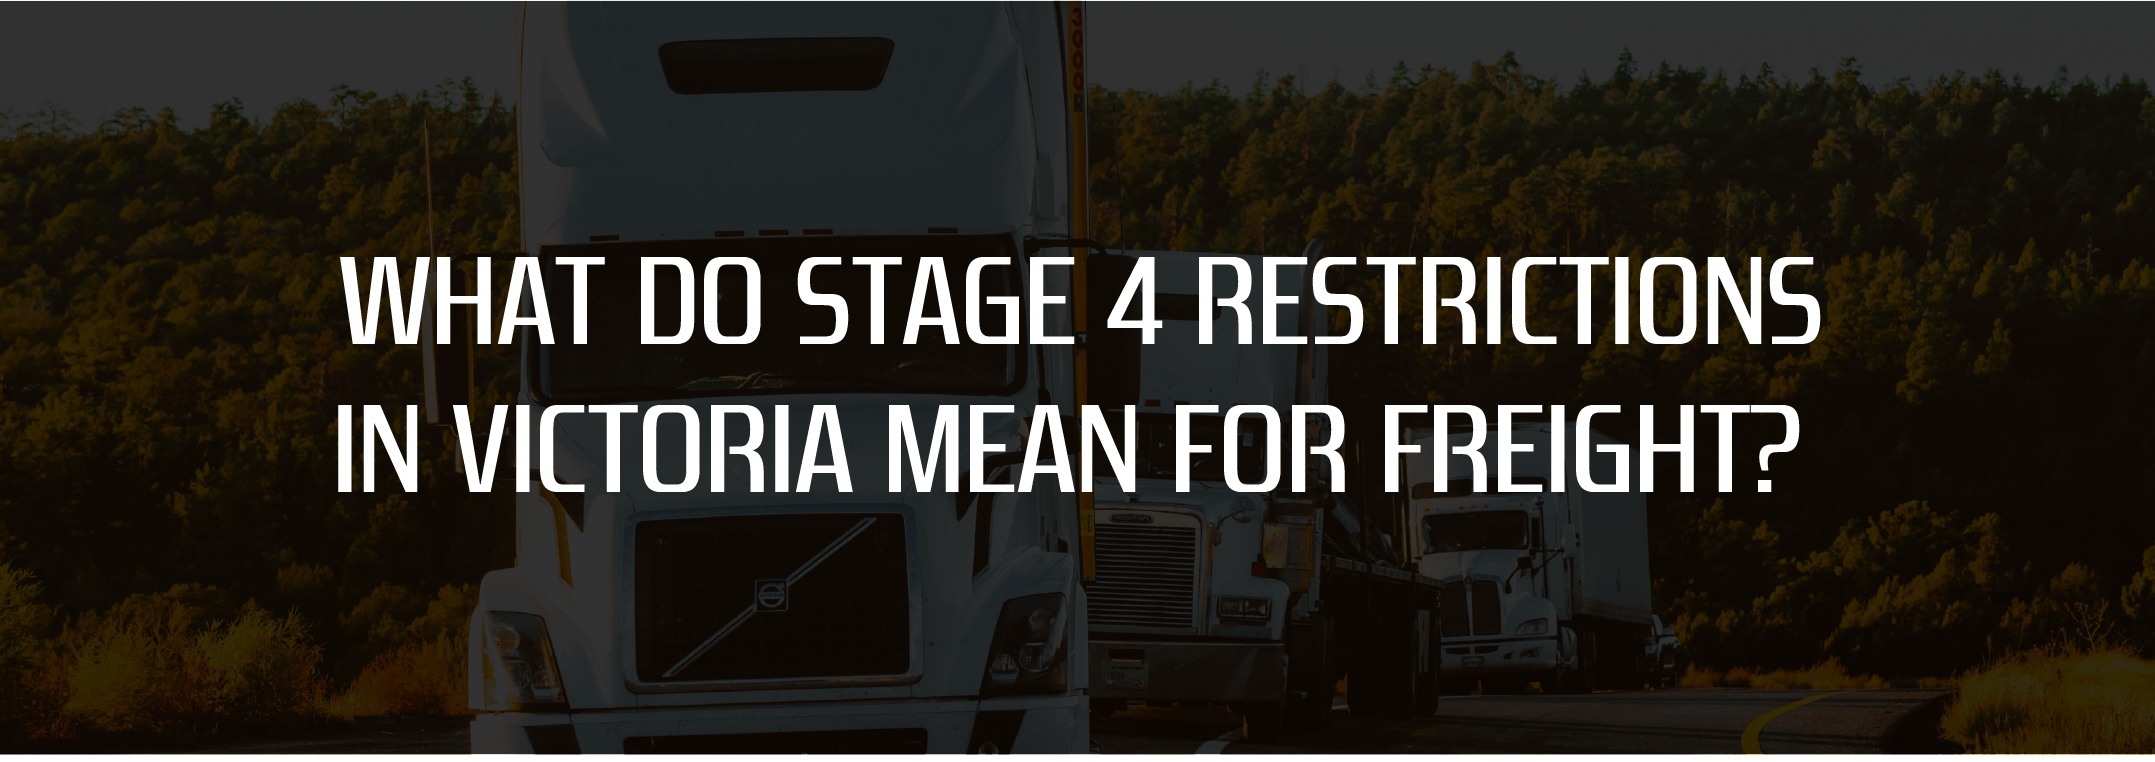 What do Stage 4 restrictions in Victoria mean for the freight industry?